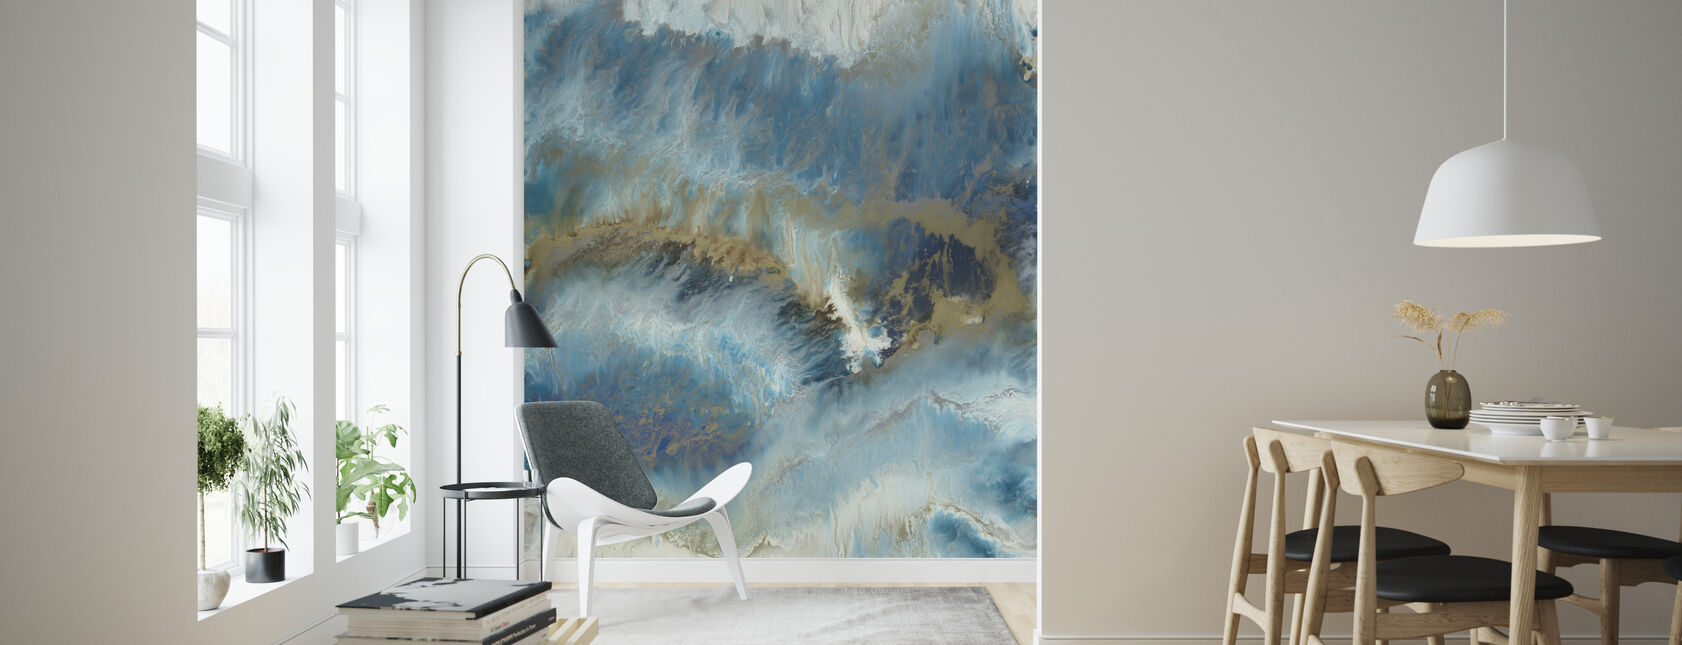 Into the Tide - Wallpaper - Living Room